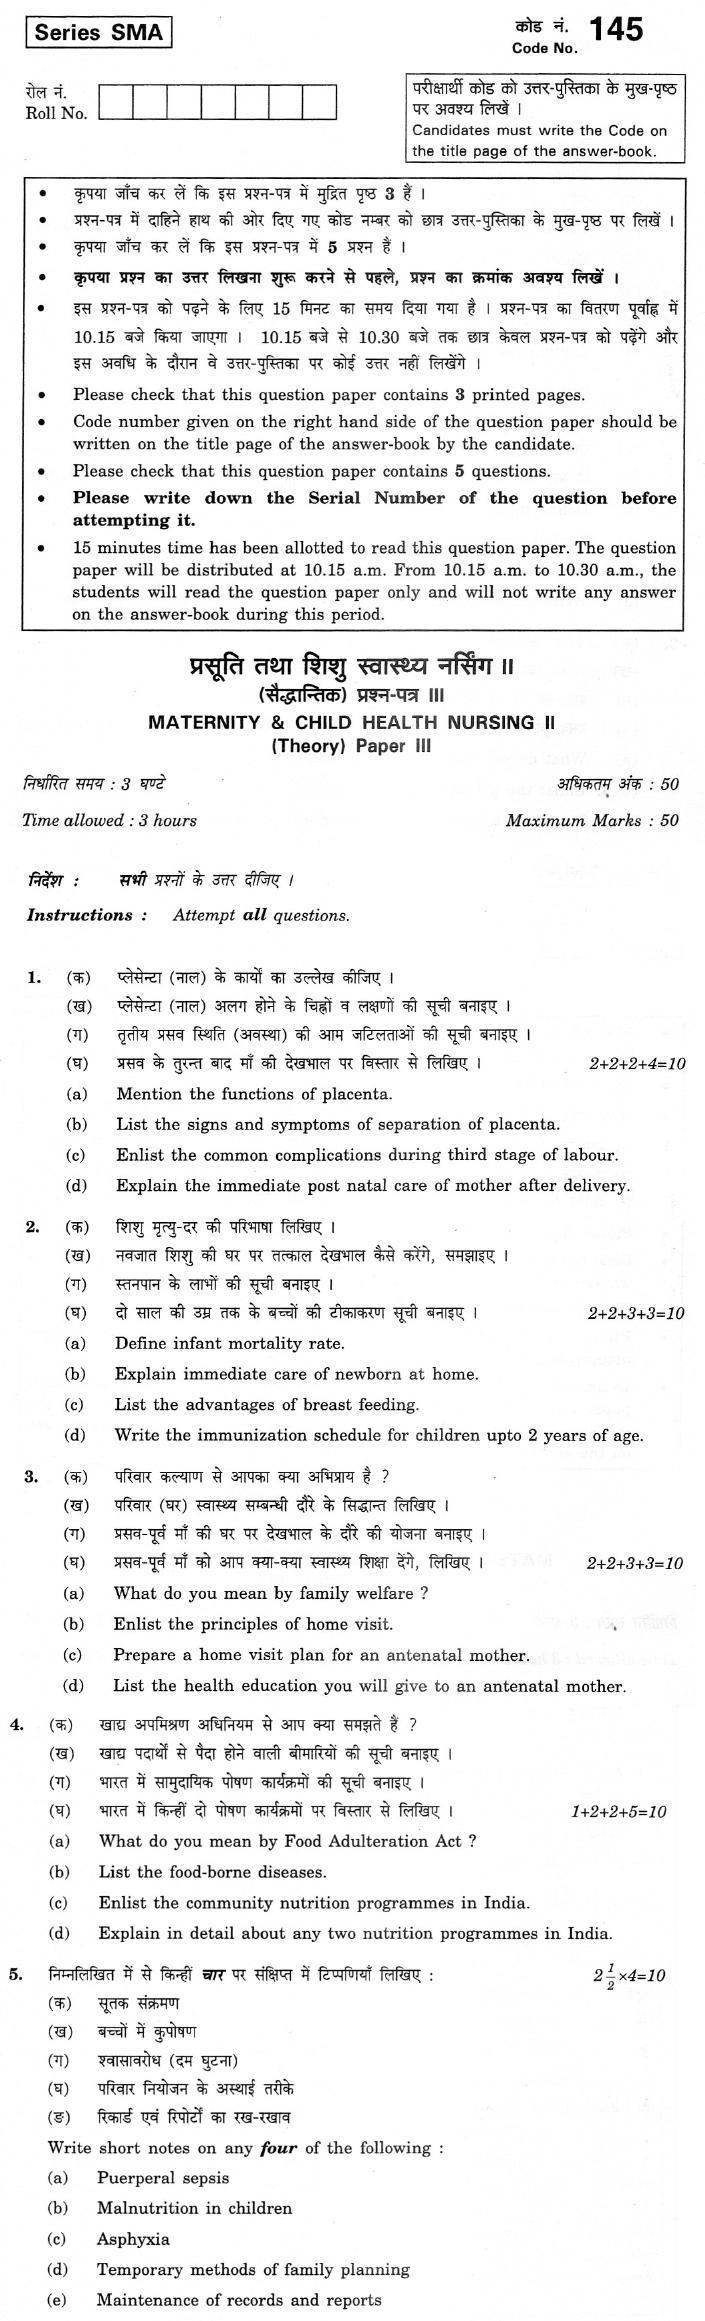 CBSE Class XII Previous Year Question Paper 2012 Maternity & Child Health Nursing II